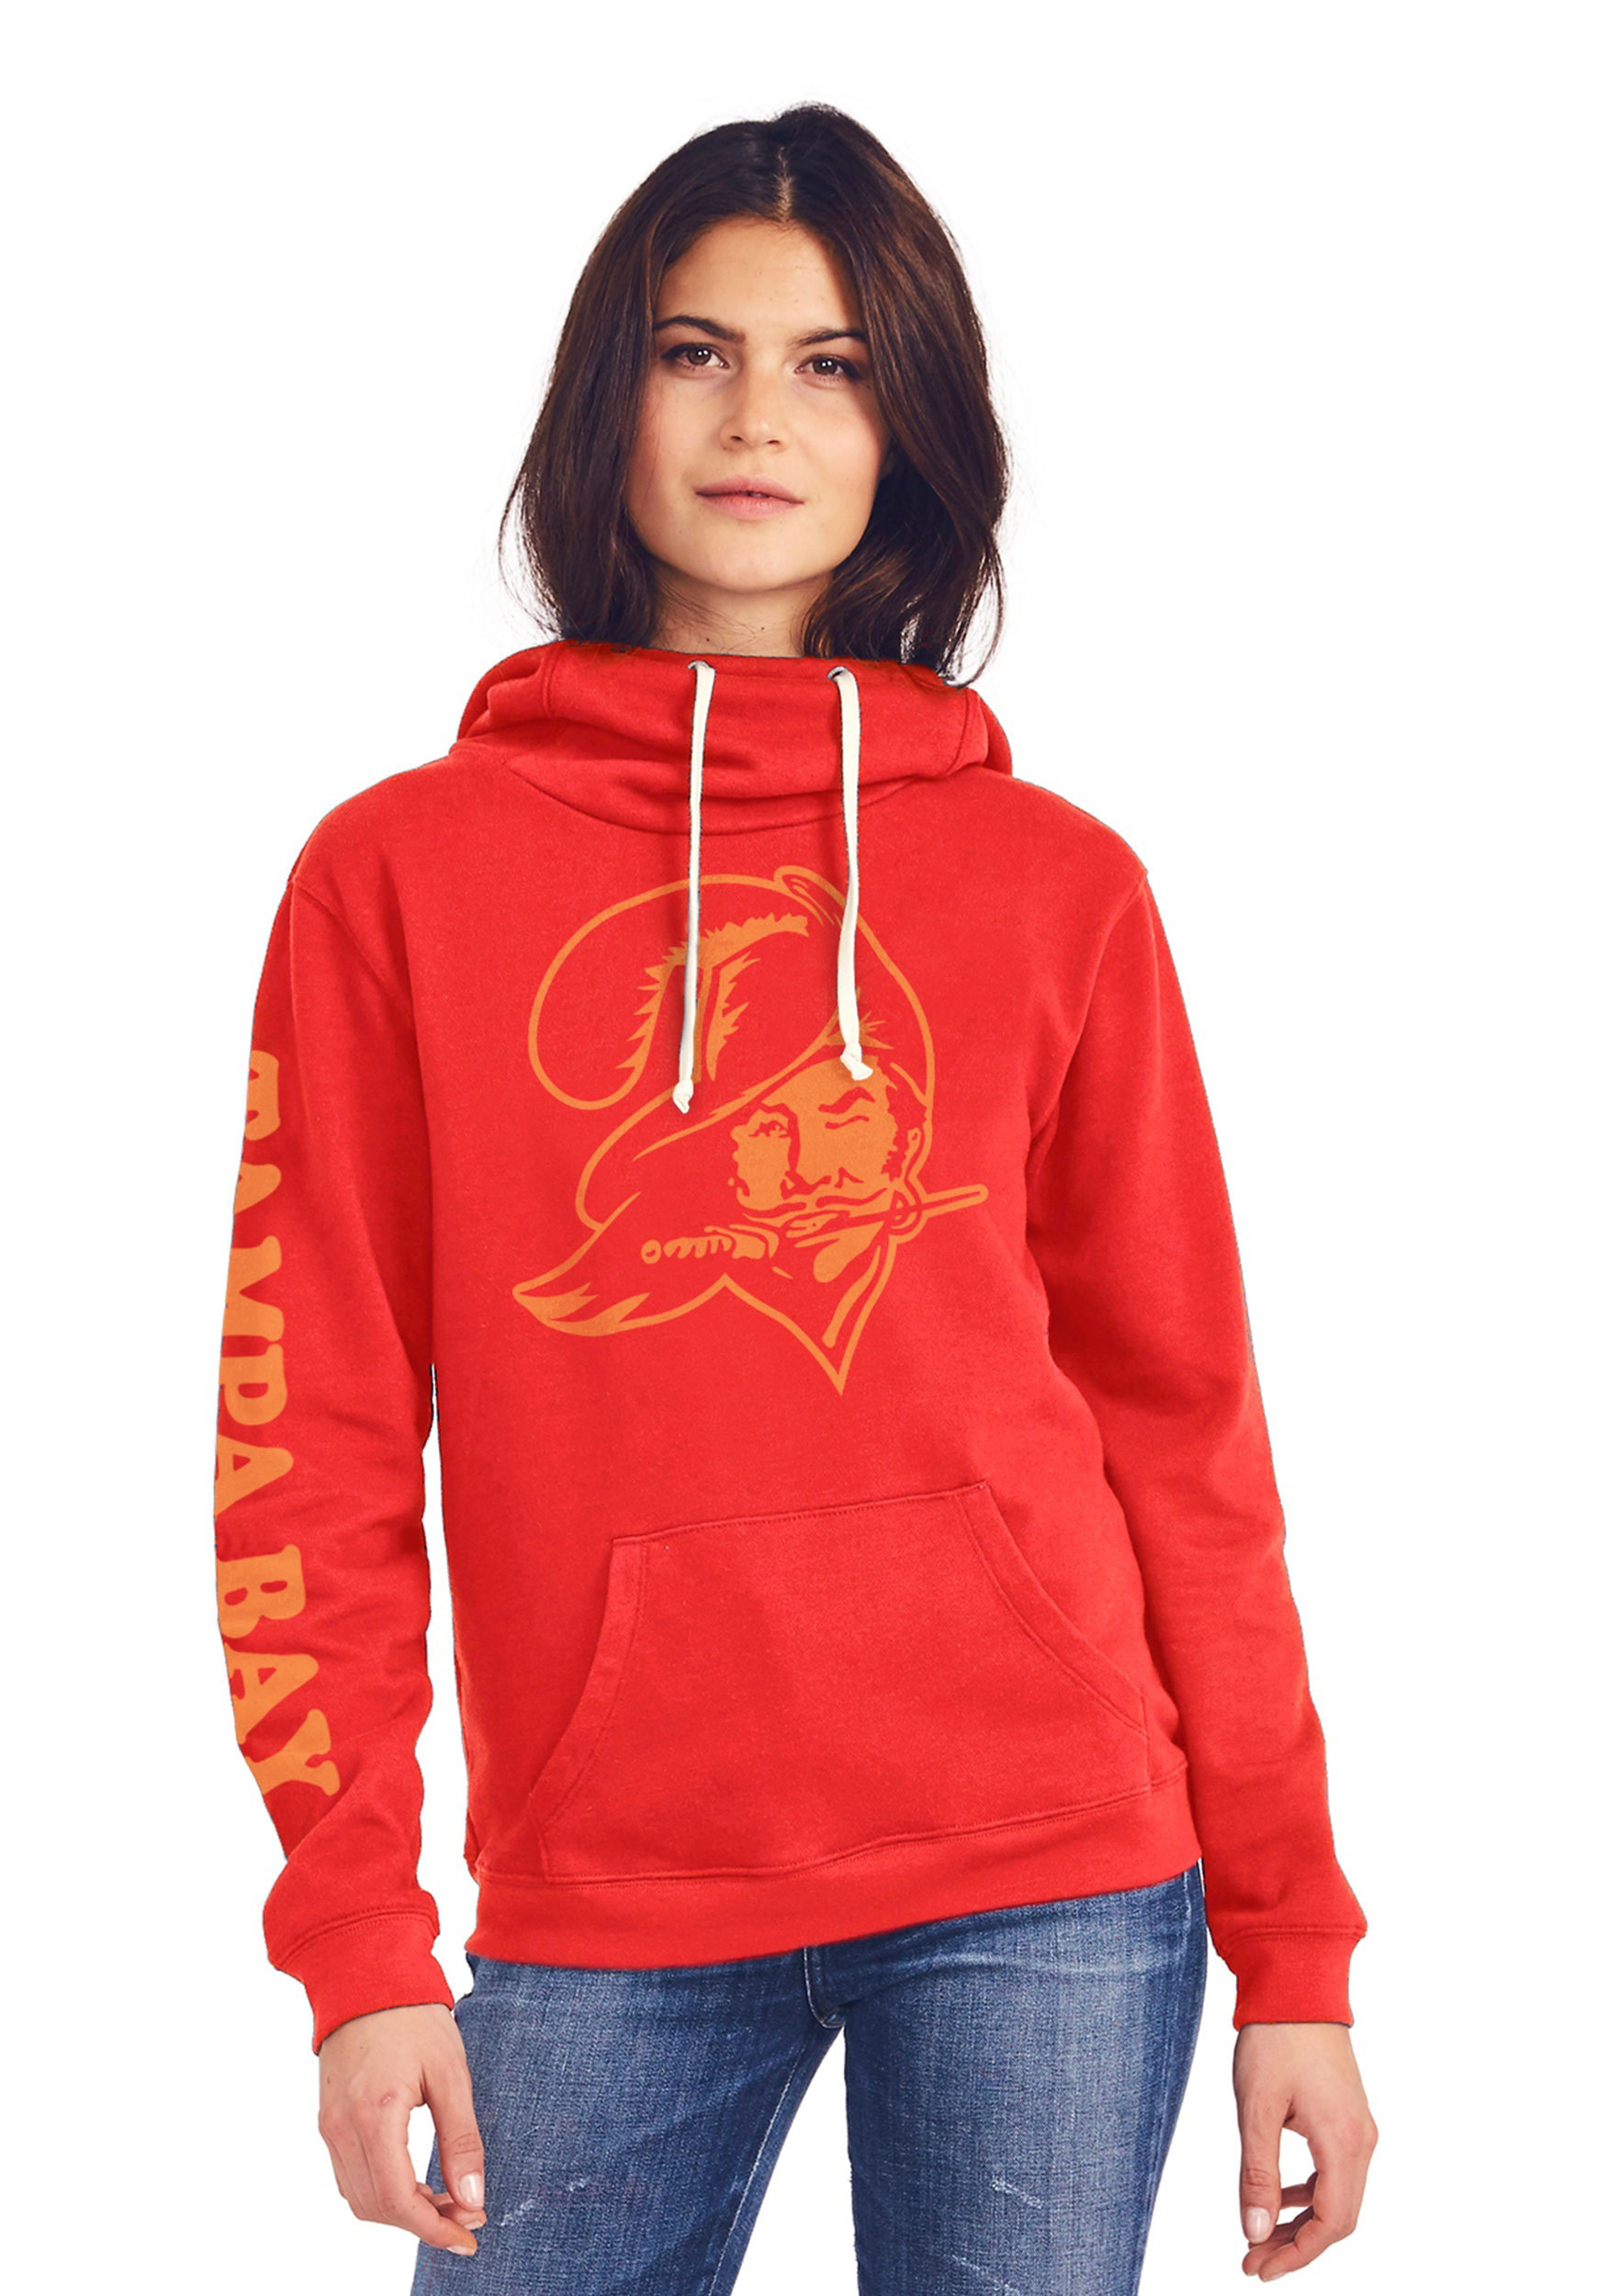 Wholesale Tampa Bay Buccaneers Cowl Neck Hooded Sweatshirt for Women  for cheap